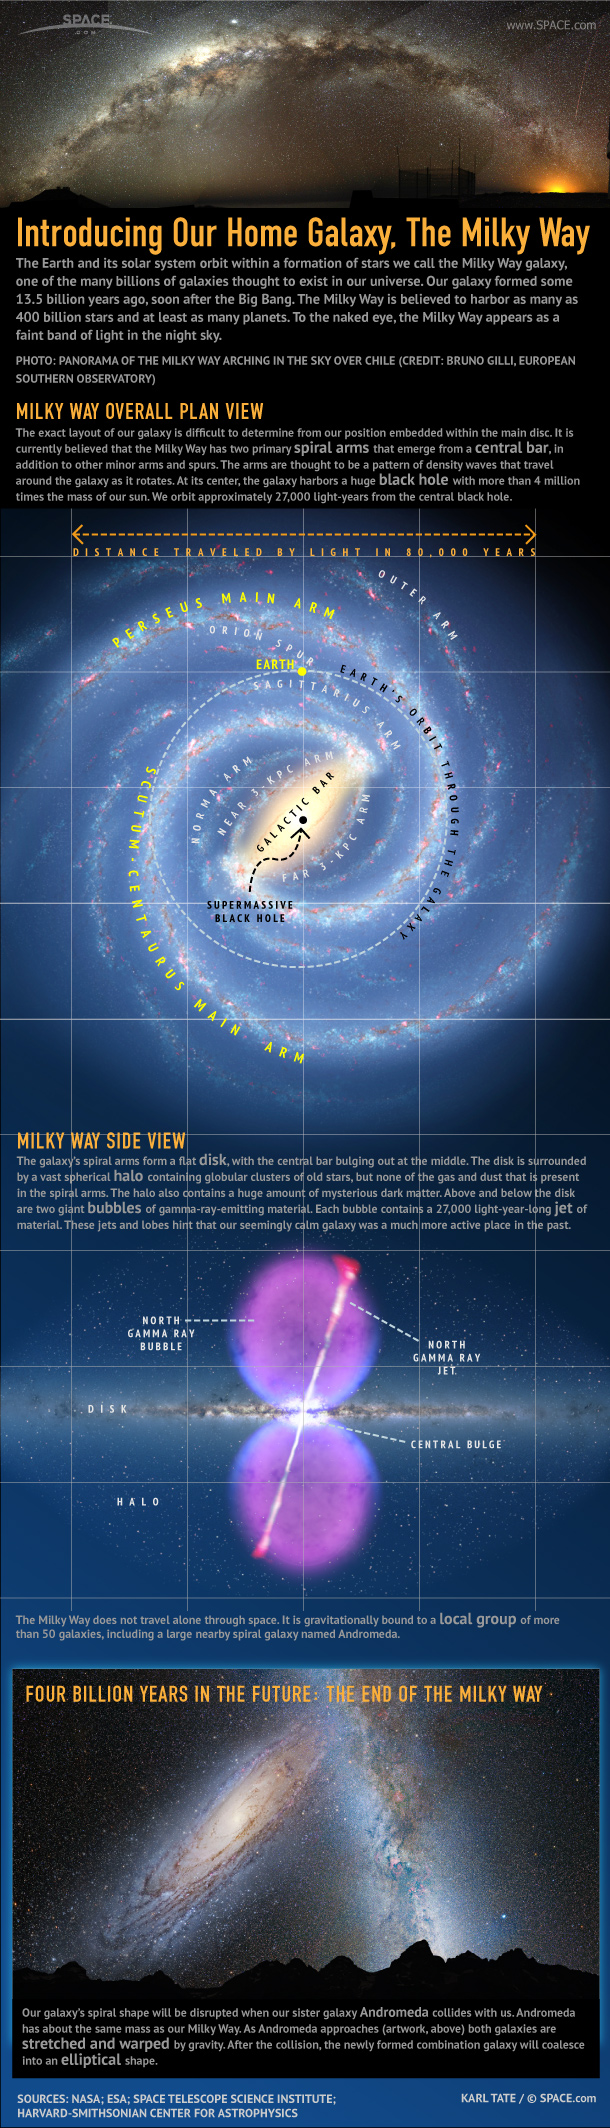 Our Milky Way Galaxy: A Traveler's Guide (Infographic)